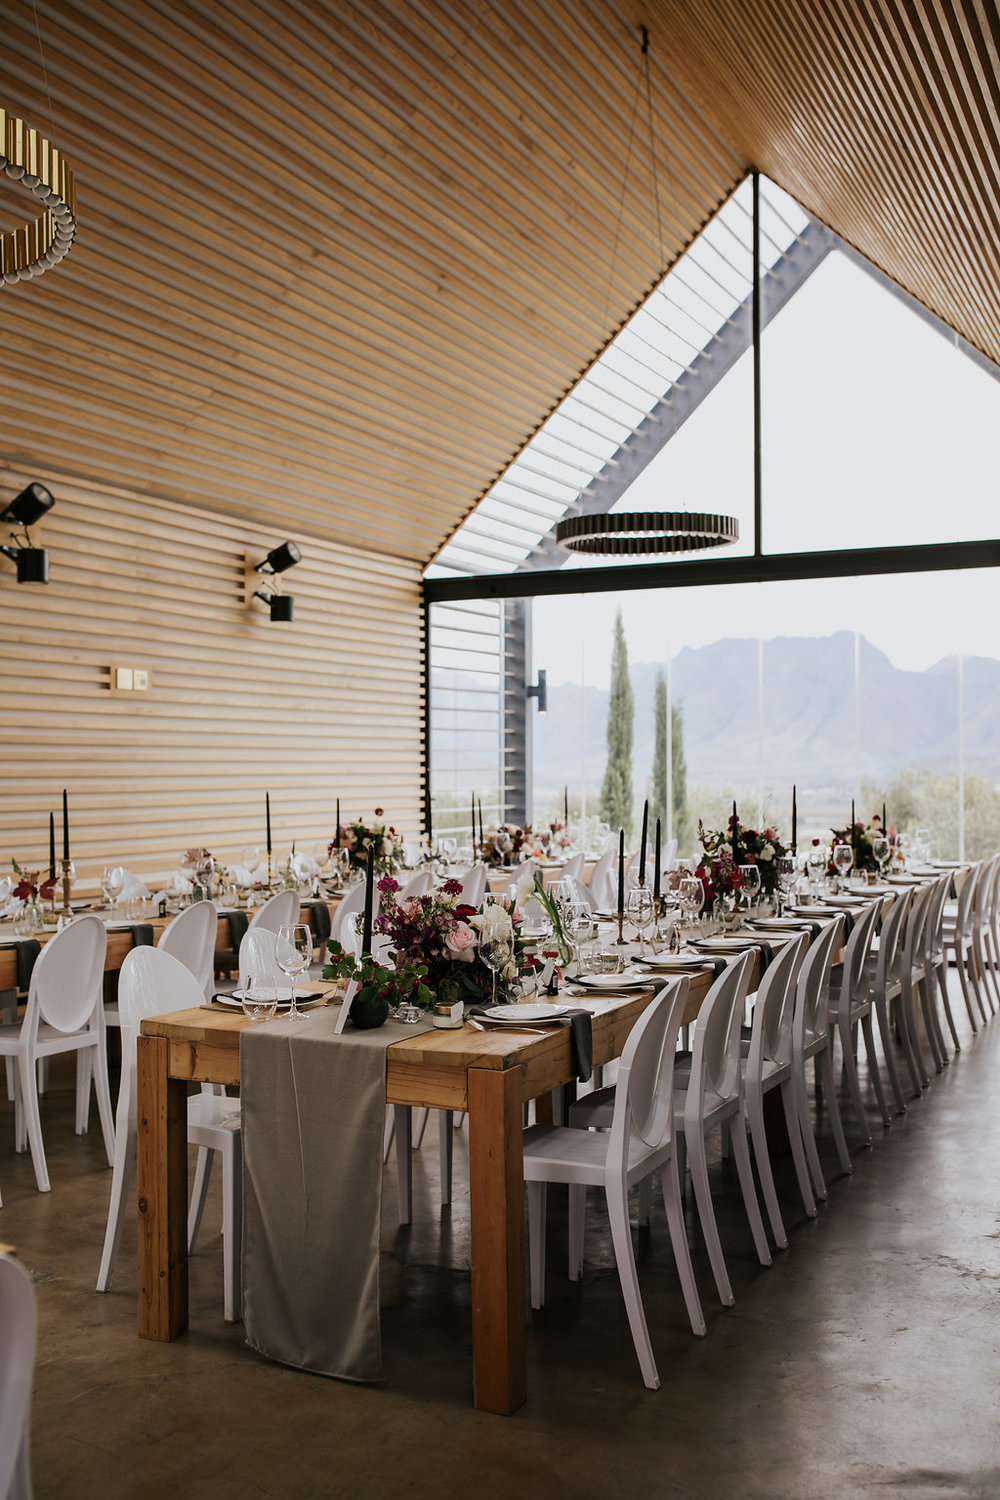 Wildeflower flowers wedding events cape town-02